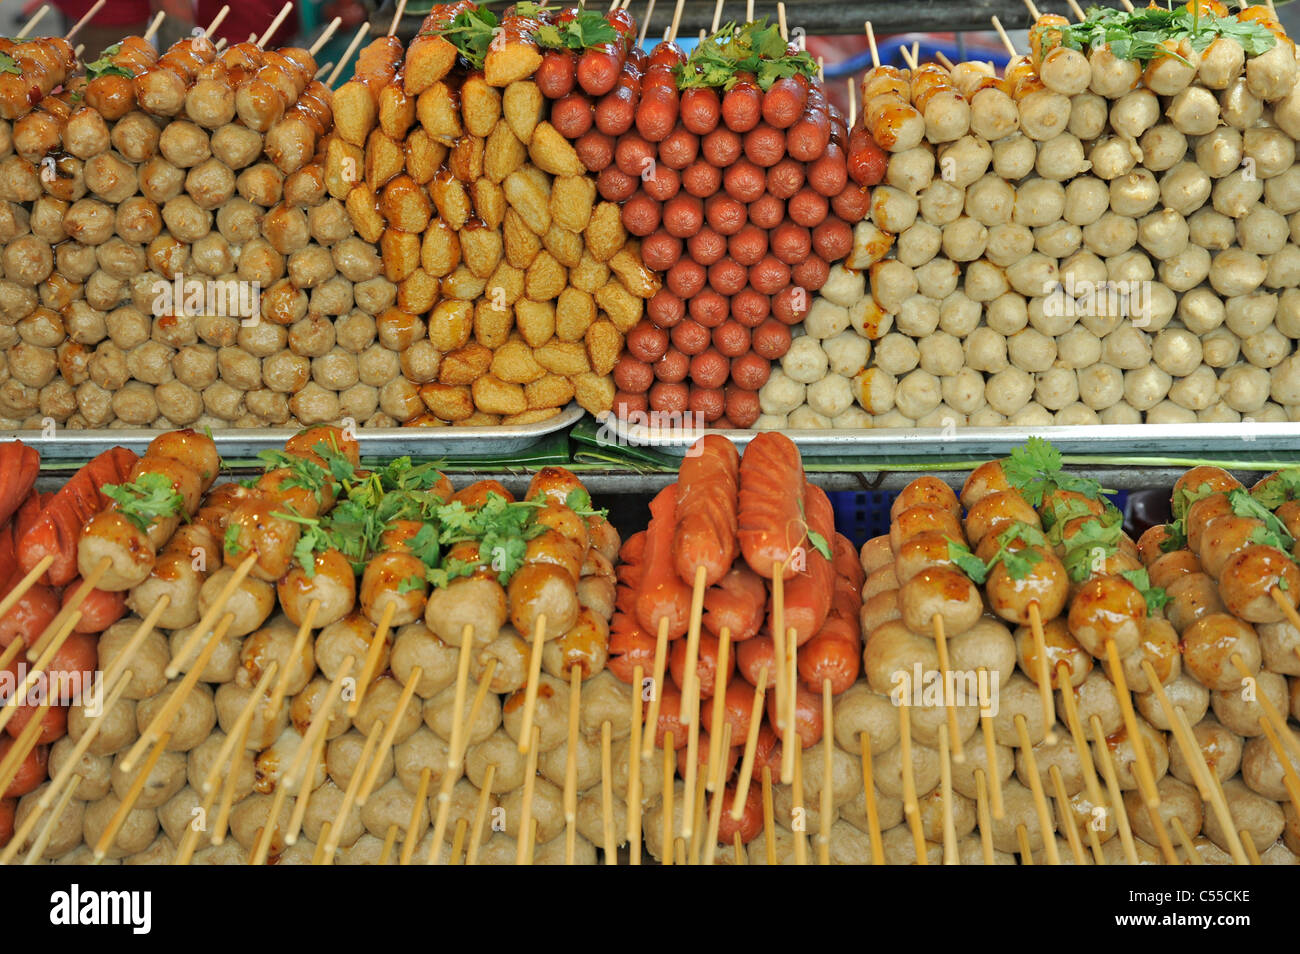 Thai food at a market stall, Chatuchak Weekend Market, Bangkok, Thailand - Stock Image